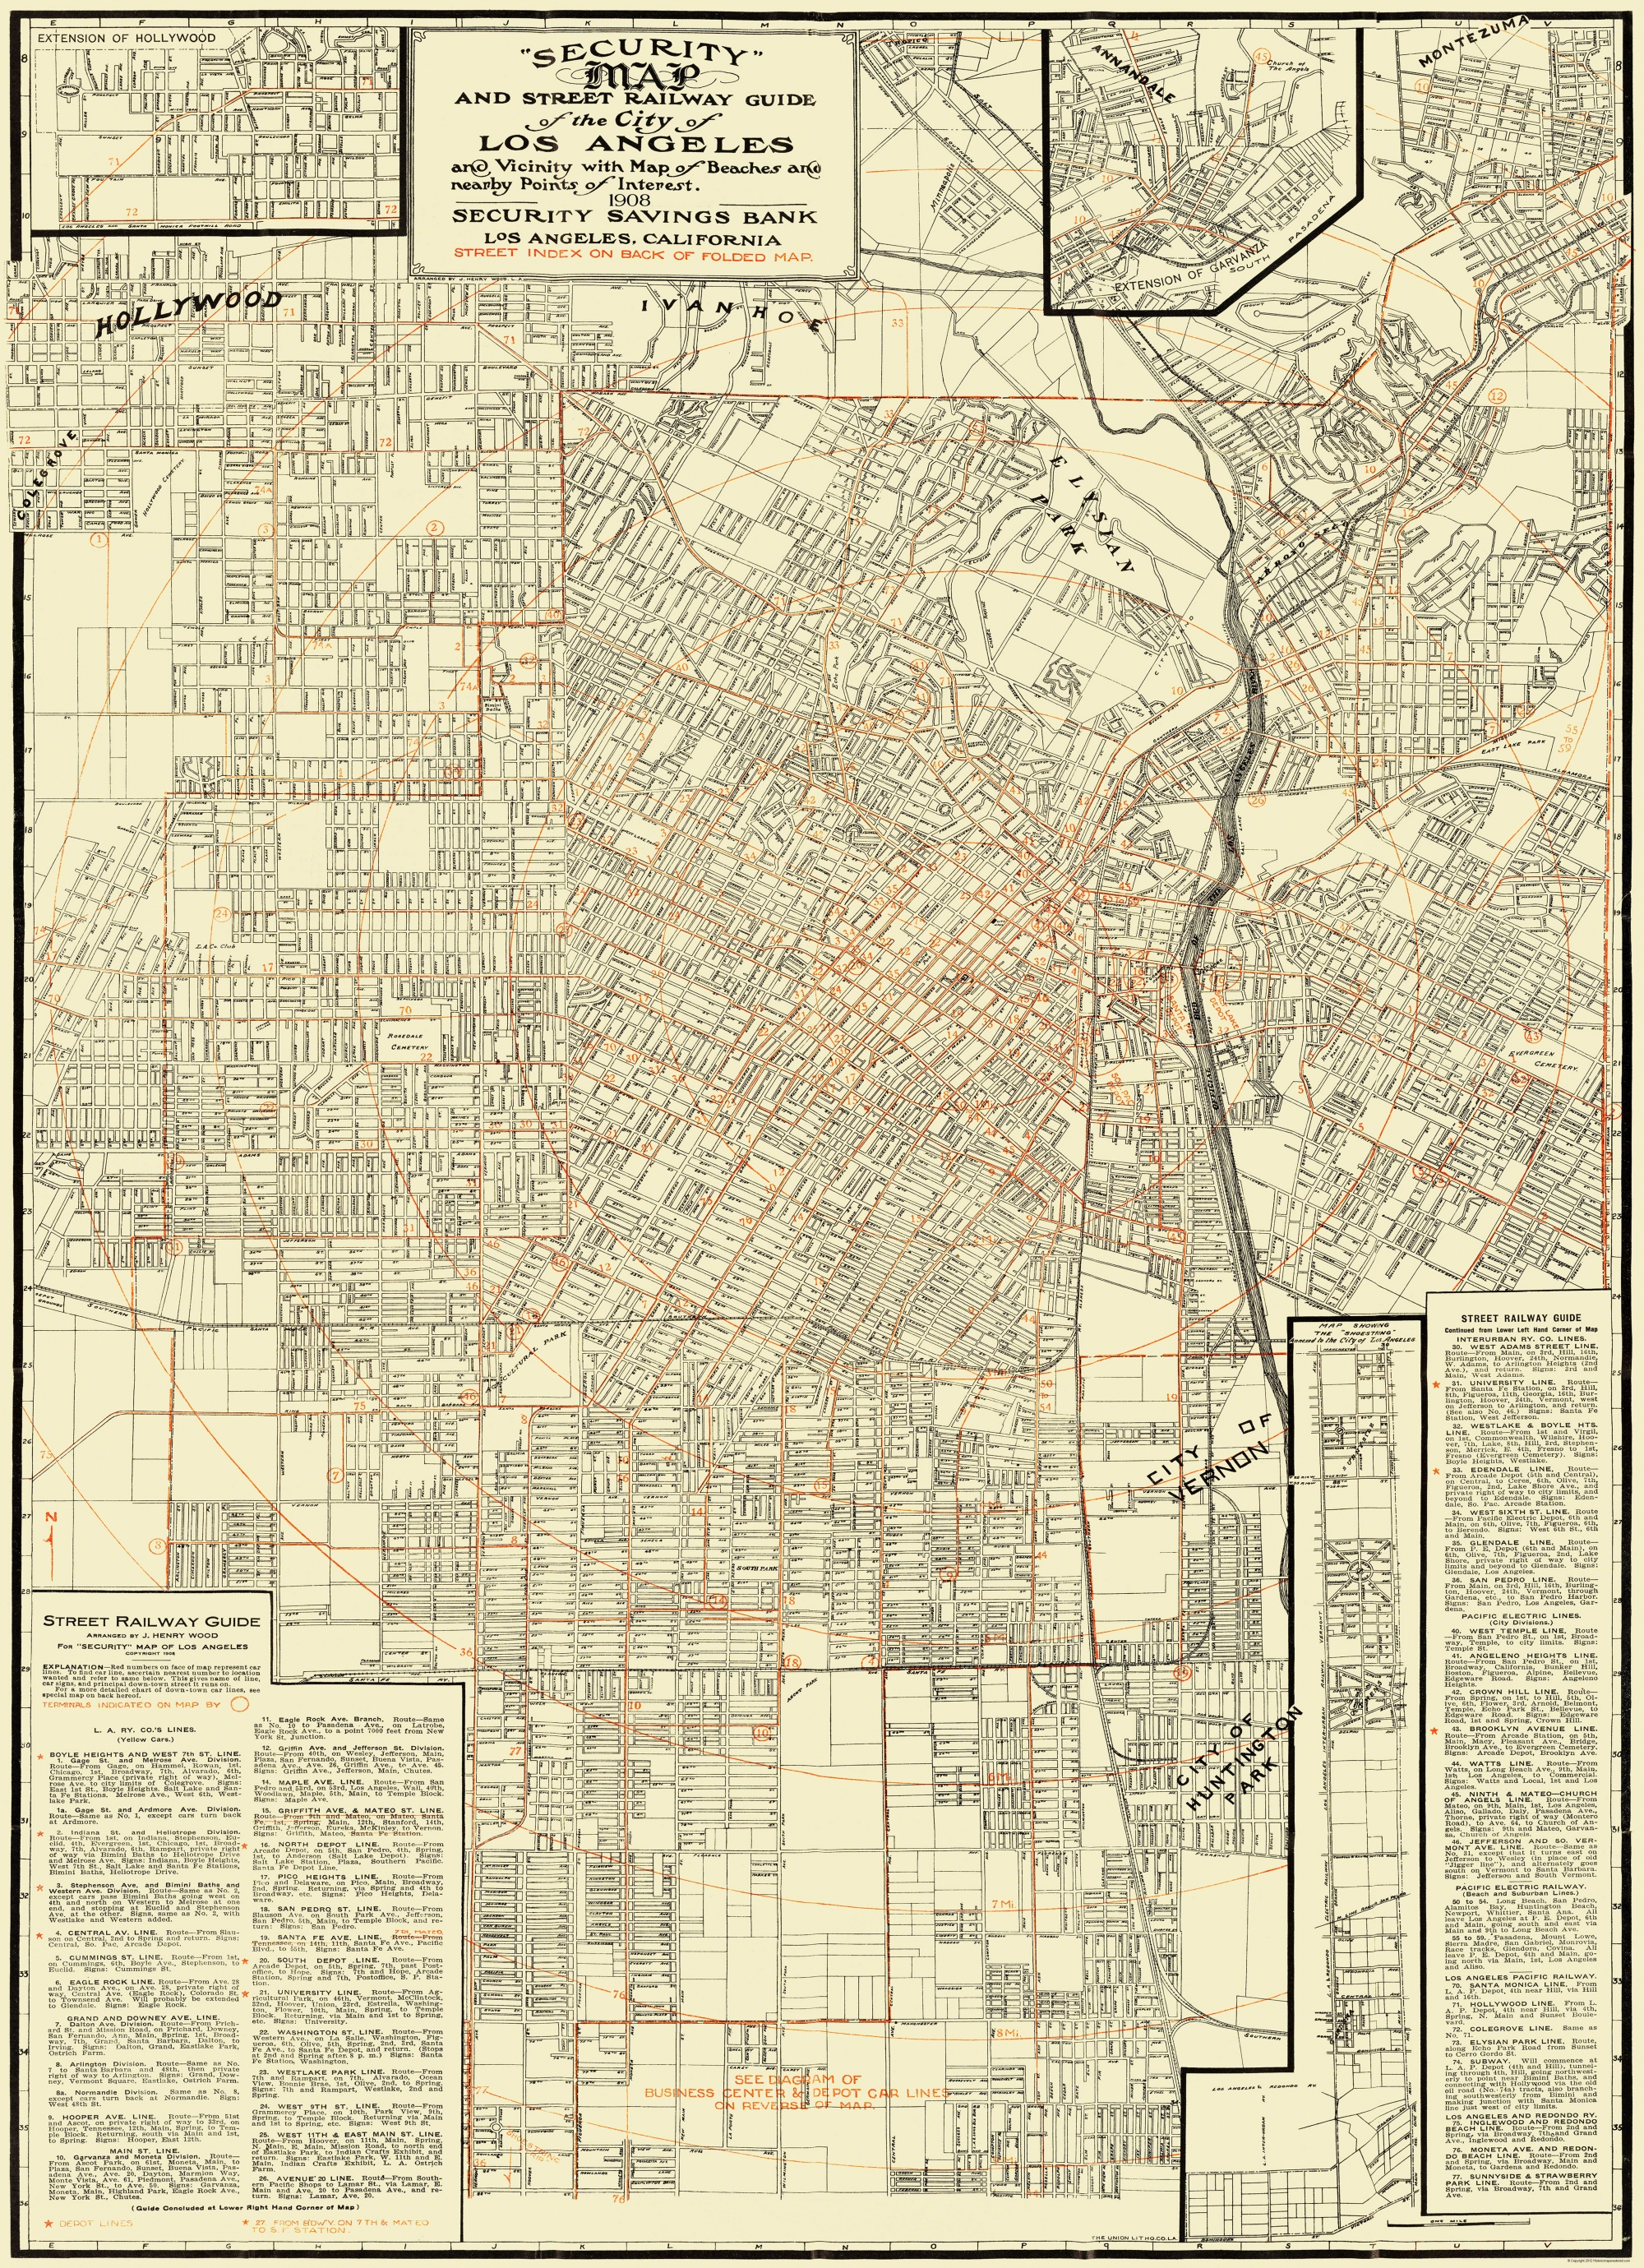 Old Railroad Map Los Angeles Street Railway Guide - Us map 1908